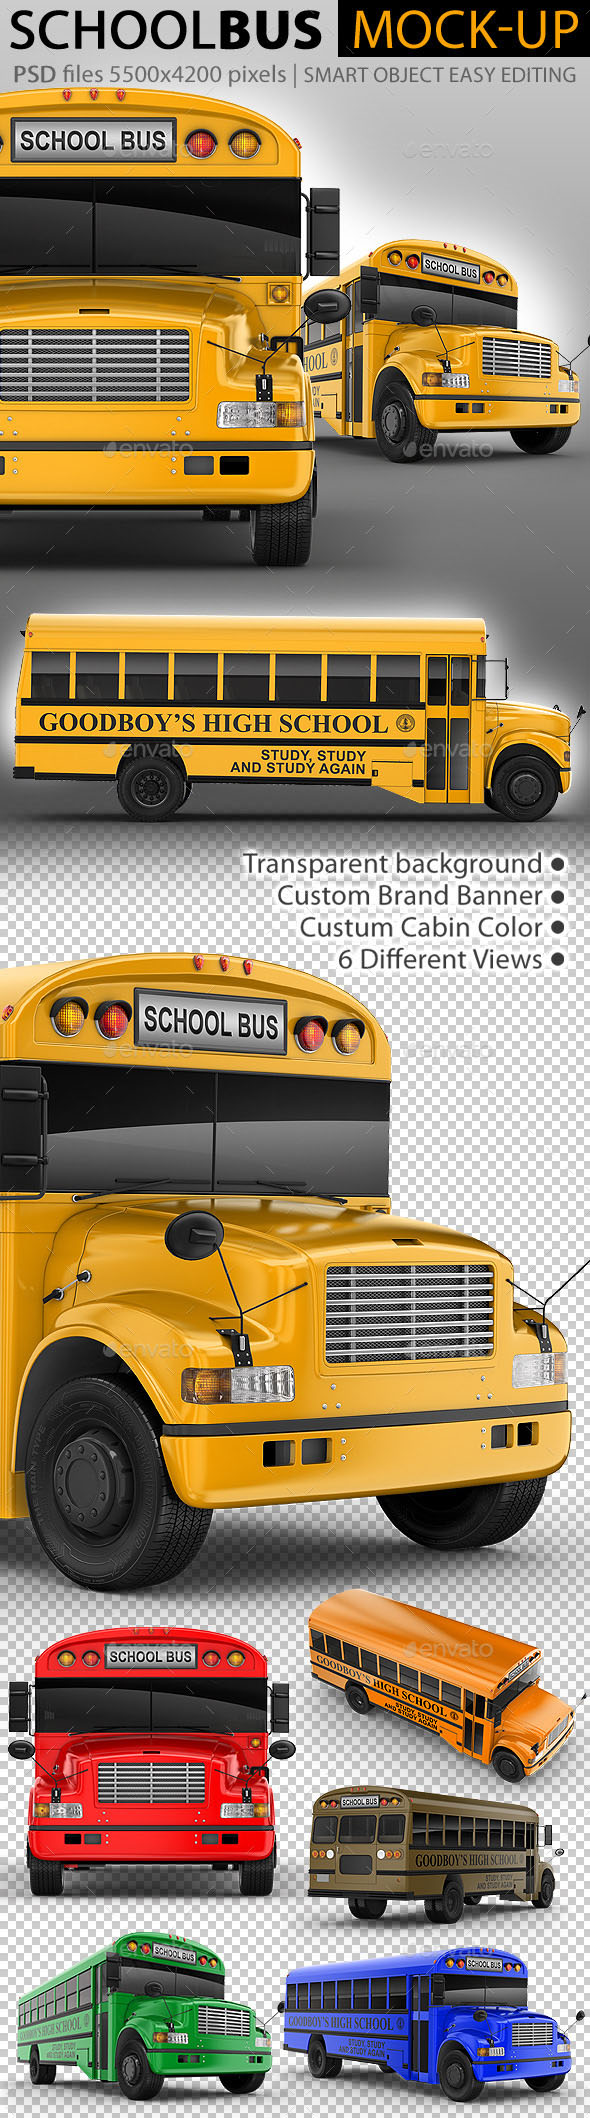 Easy Editing 3D Mockup for School Bus